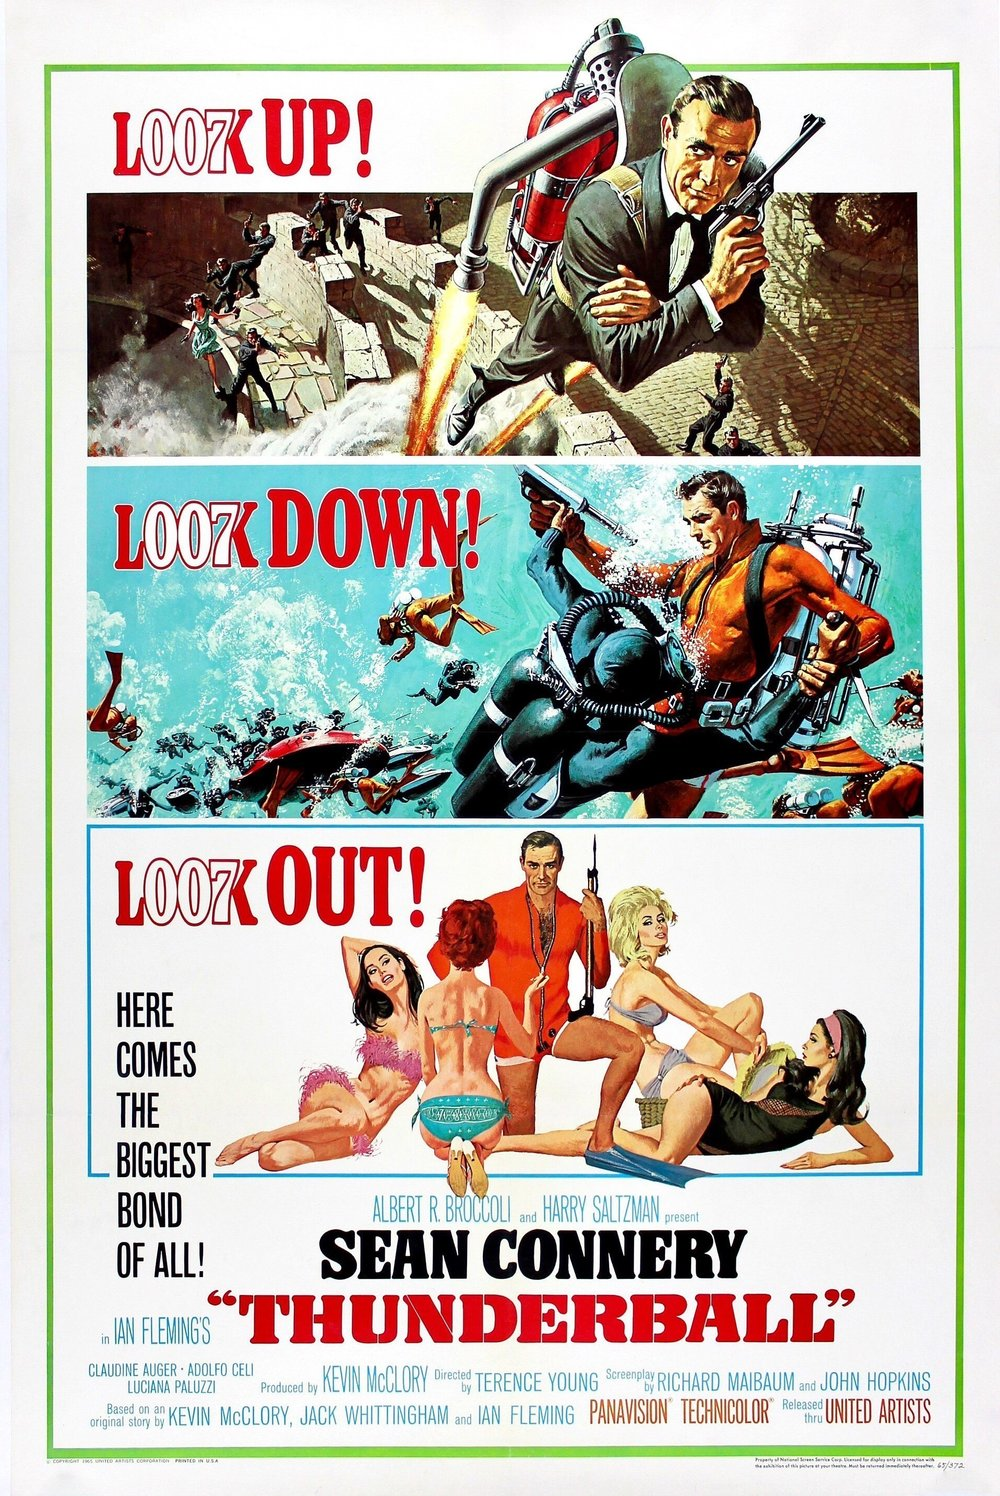 Cinema Poster for Thunderball, Original hanging in the sky-lounge onboard Yacht Sweet Escape. Original Bond film posters are highly collectable.